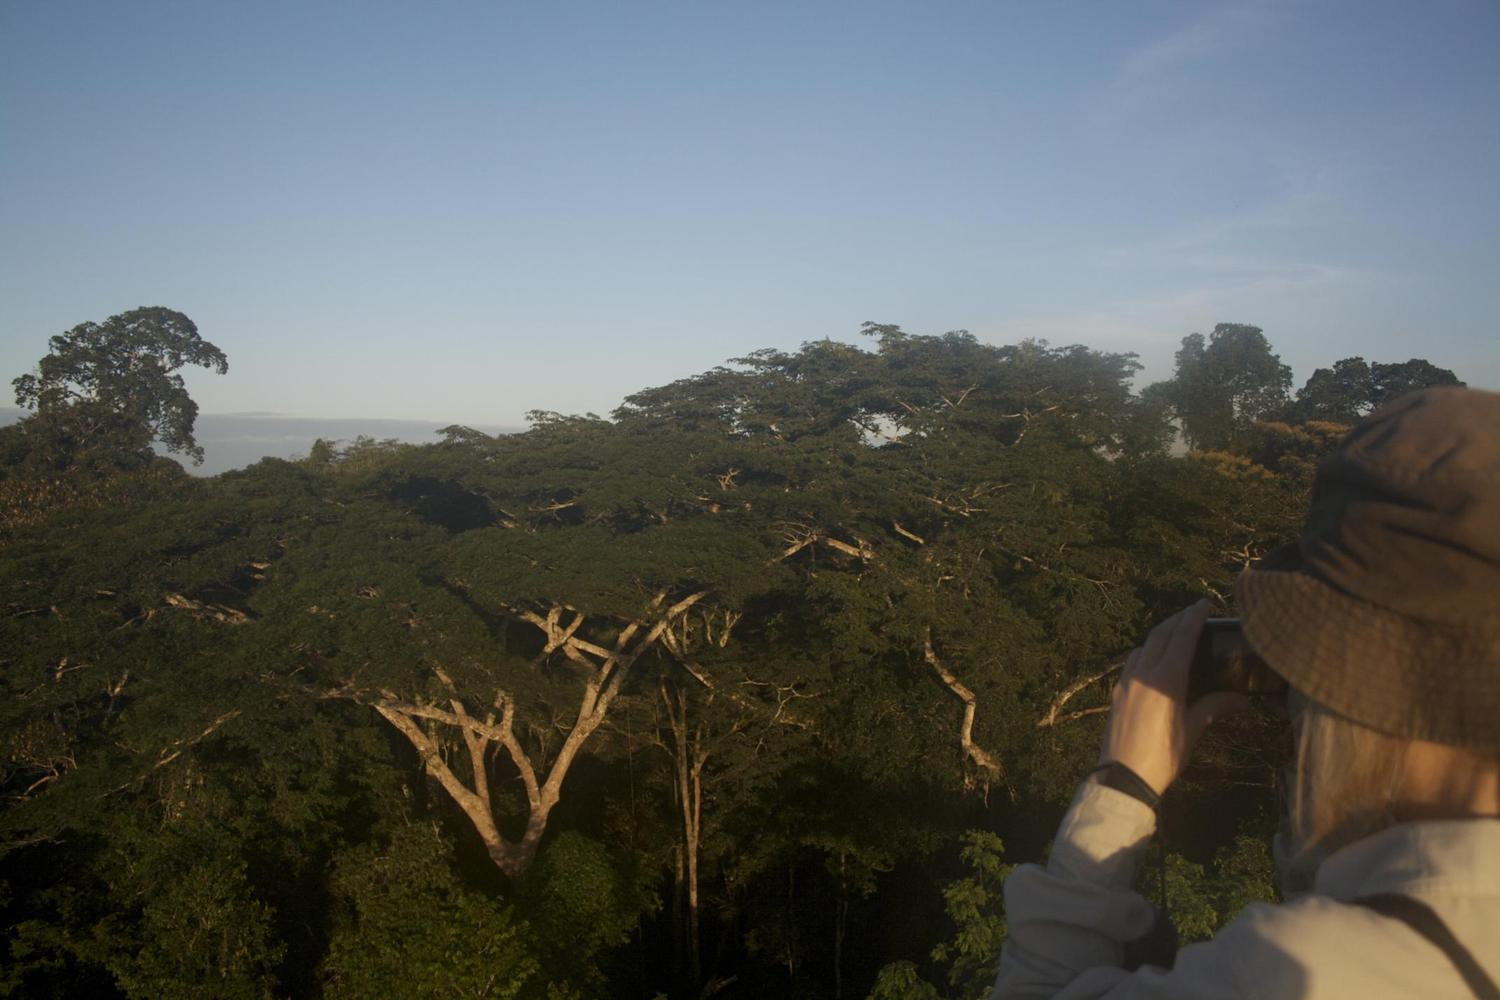 Looking out over the canopy of the Refugio Amazonas